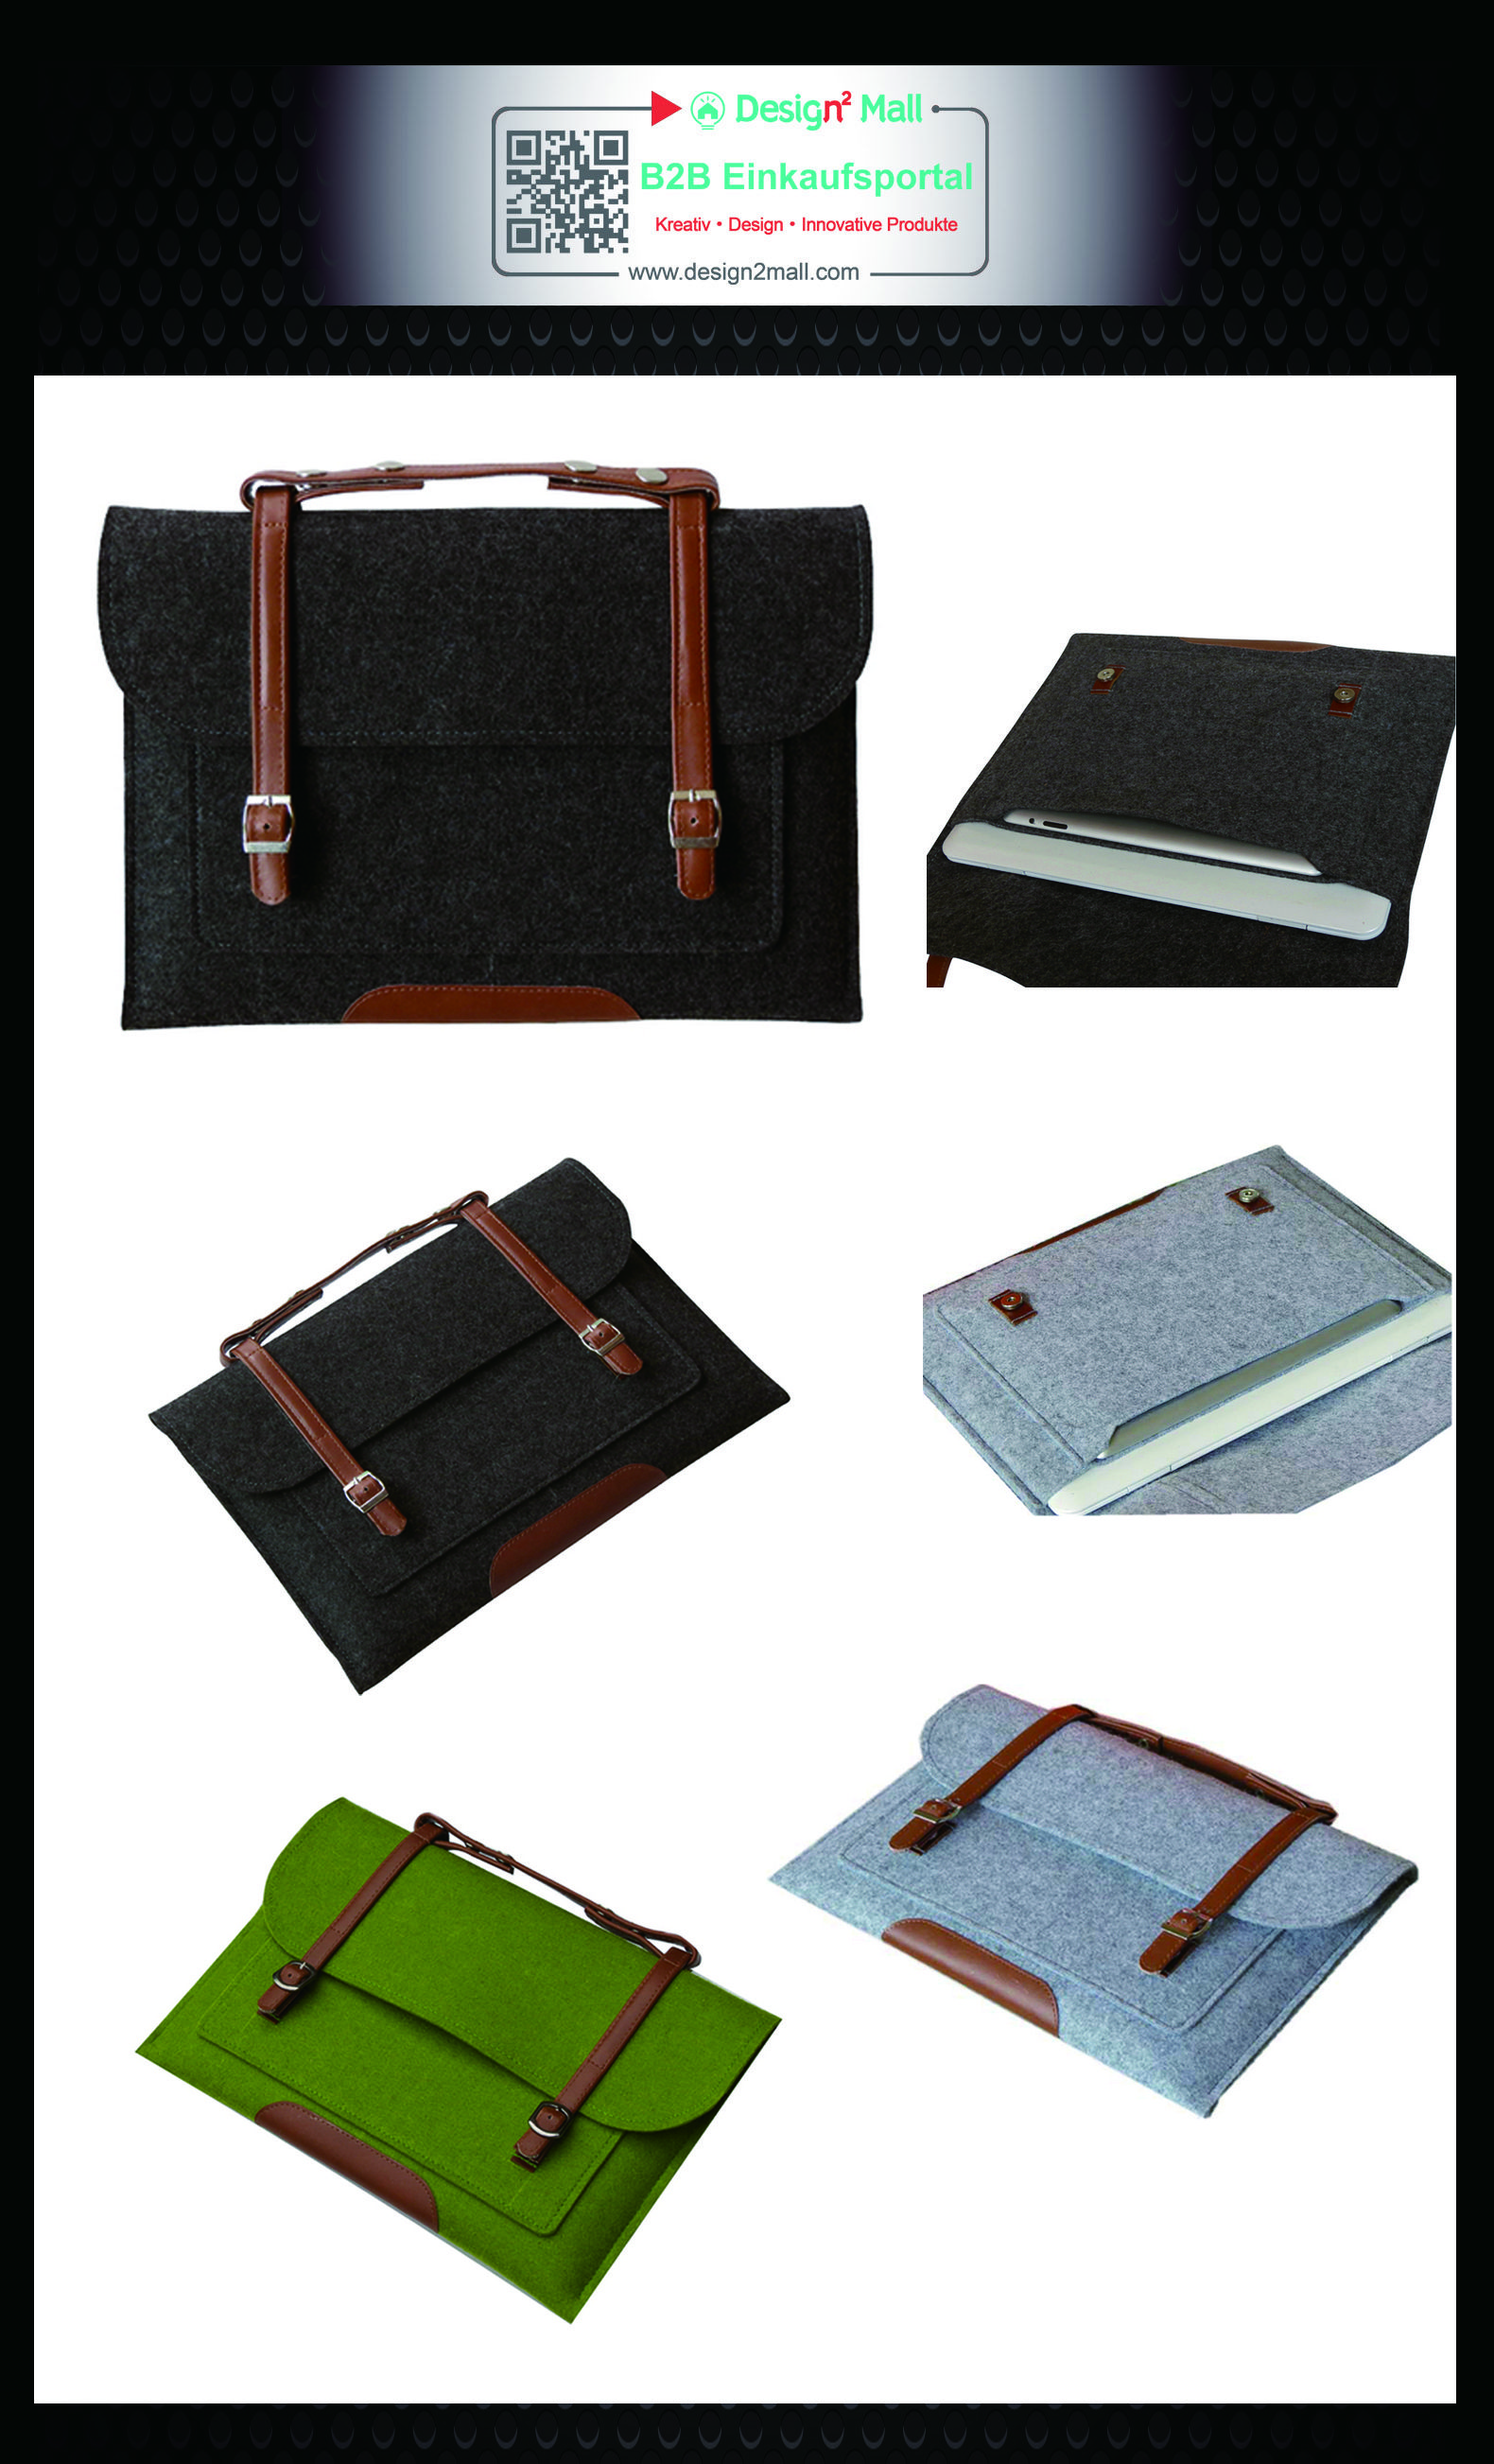 Wool Felt Macbook Ultrabook Sleeve Laptop Bag Clutch Handbag Felt